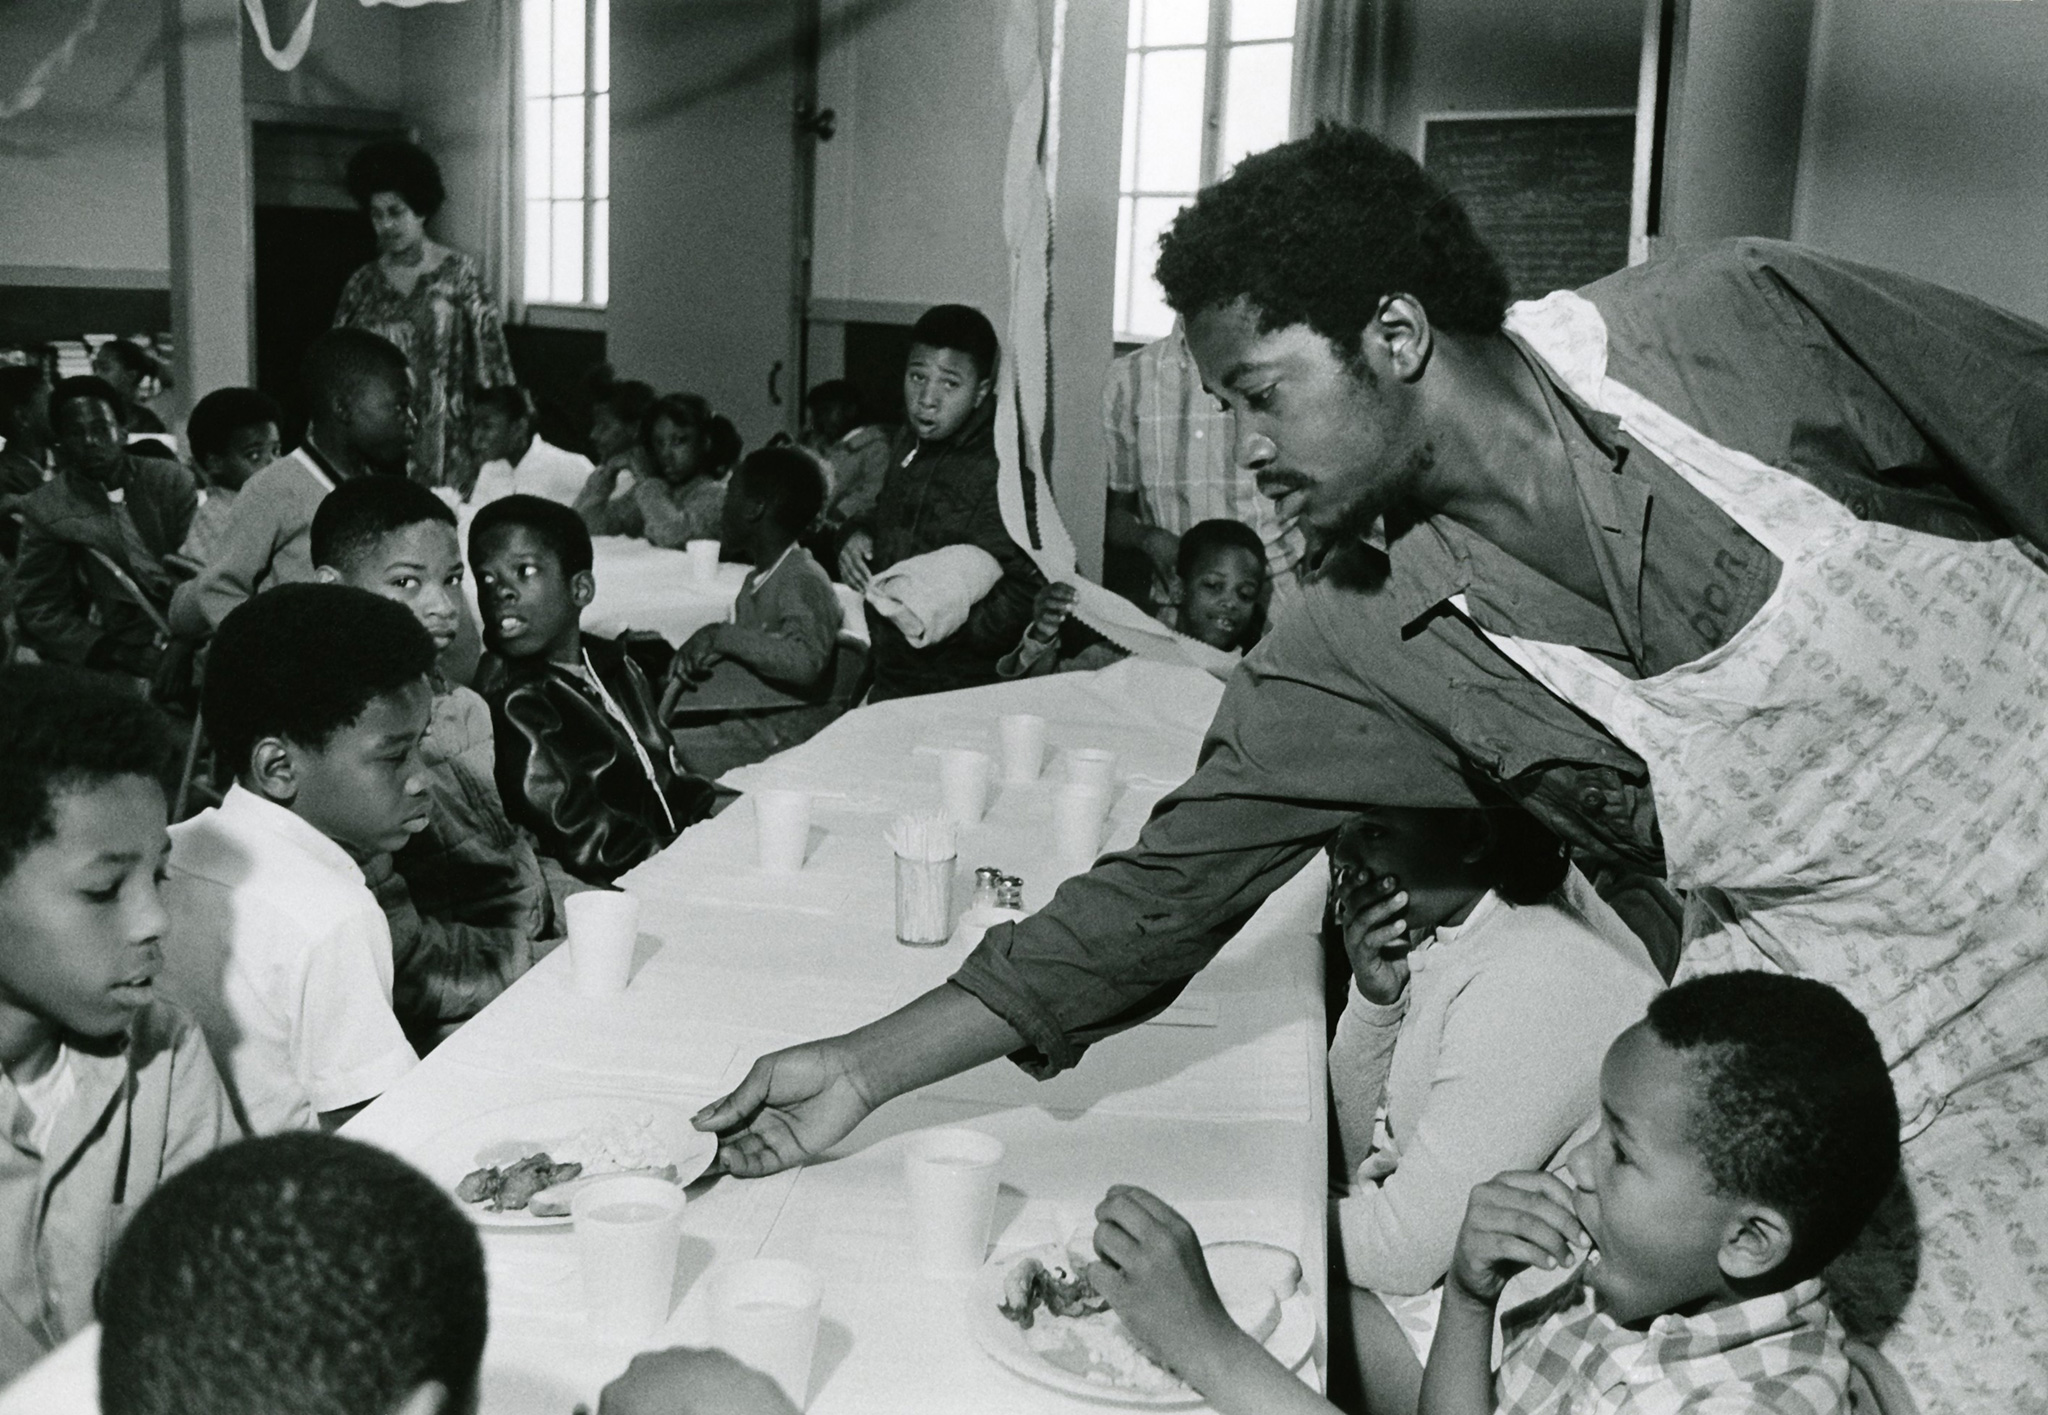 PHOTOGRAPH BY WILLIAM P. STRAETER, AP (purported). Taken from http://theplate.nationalgeographic.com/2015/11/04/the-black-panthers-revolutionaries-free-breakfast-pioneers/.